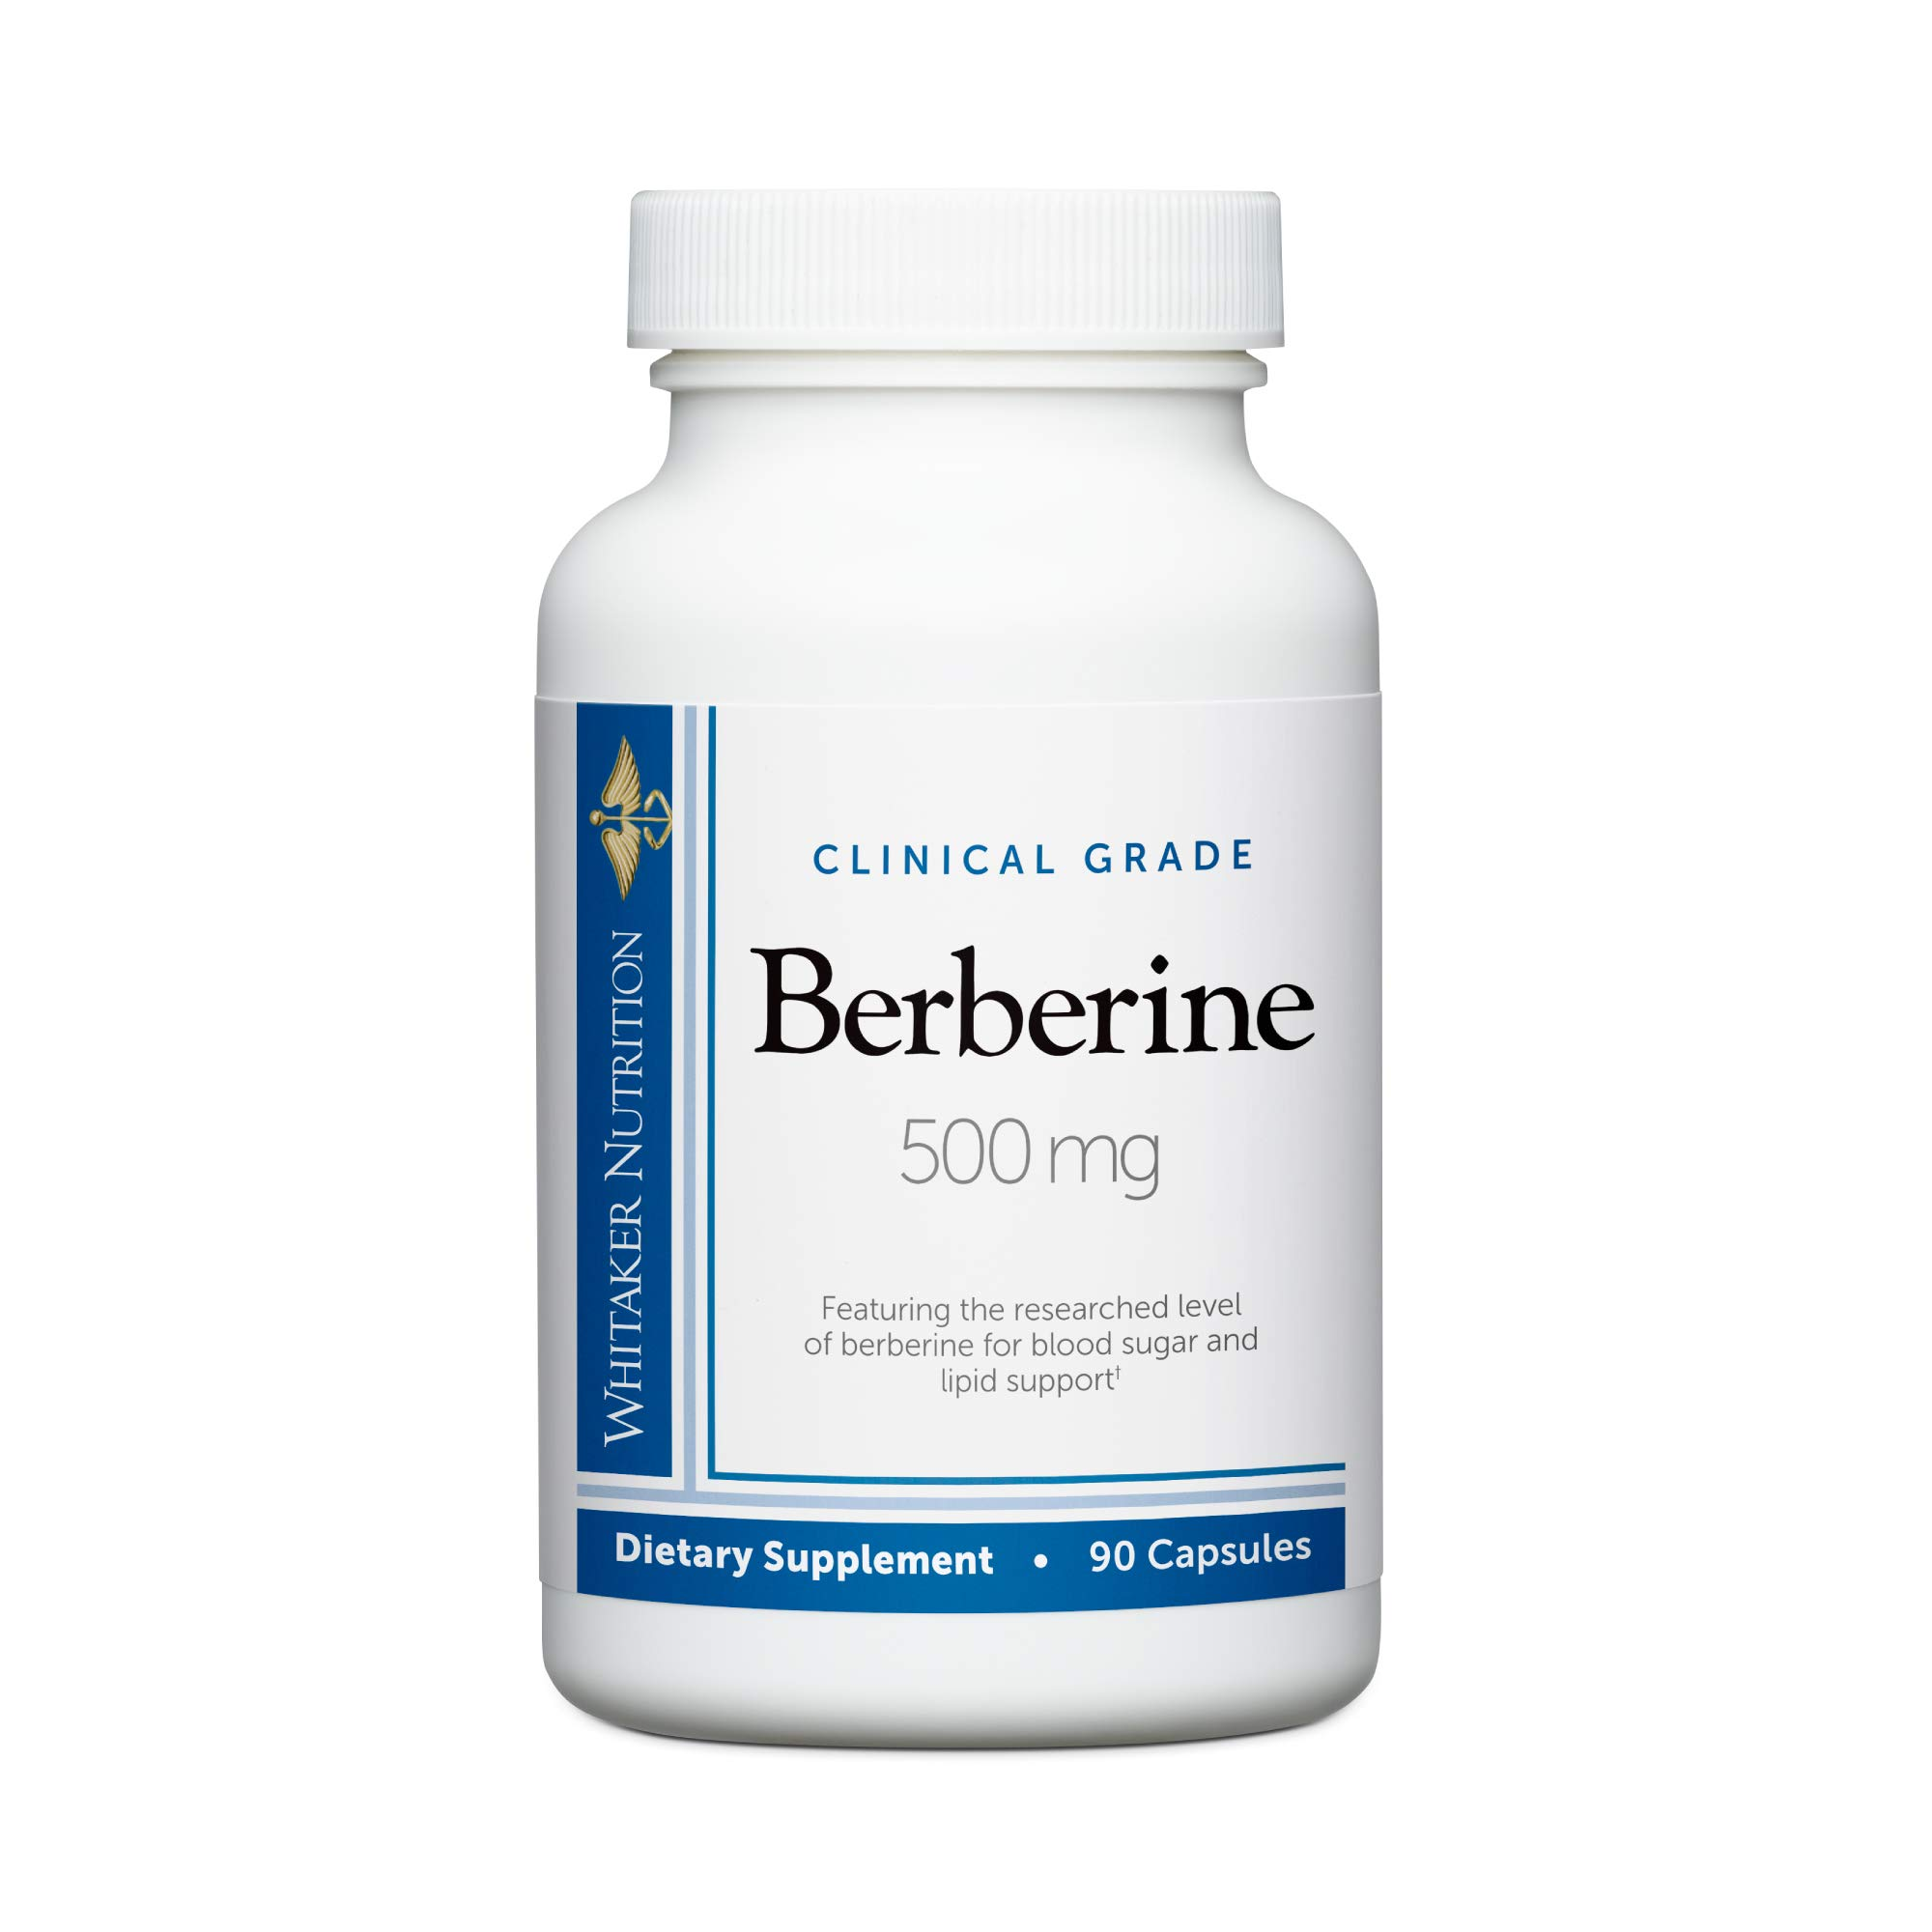 Dr. Whitaker's Clinical Grade Berberine 500 mg Supplement to Support Blood Sugar, Cholesterol, and Insulin Sensitivity (90 Capsules)